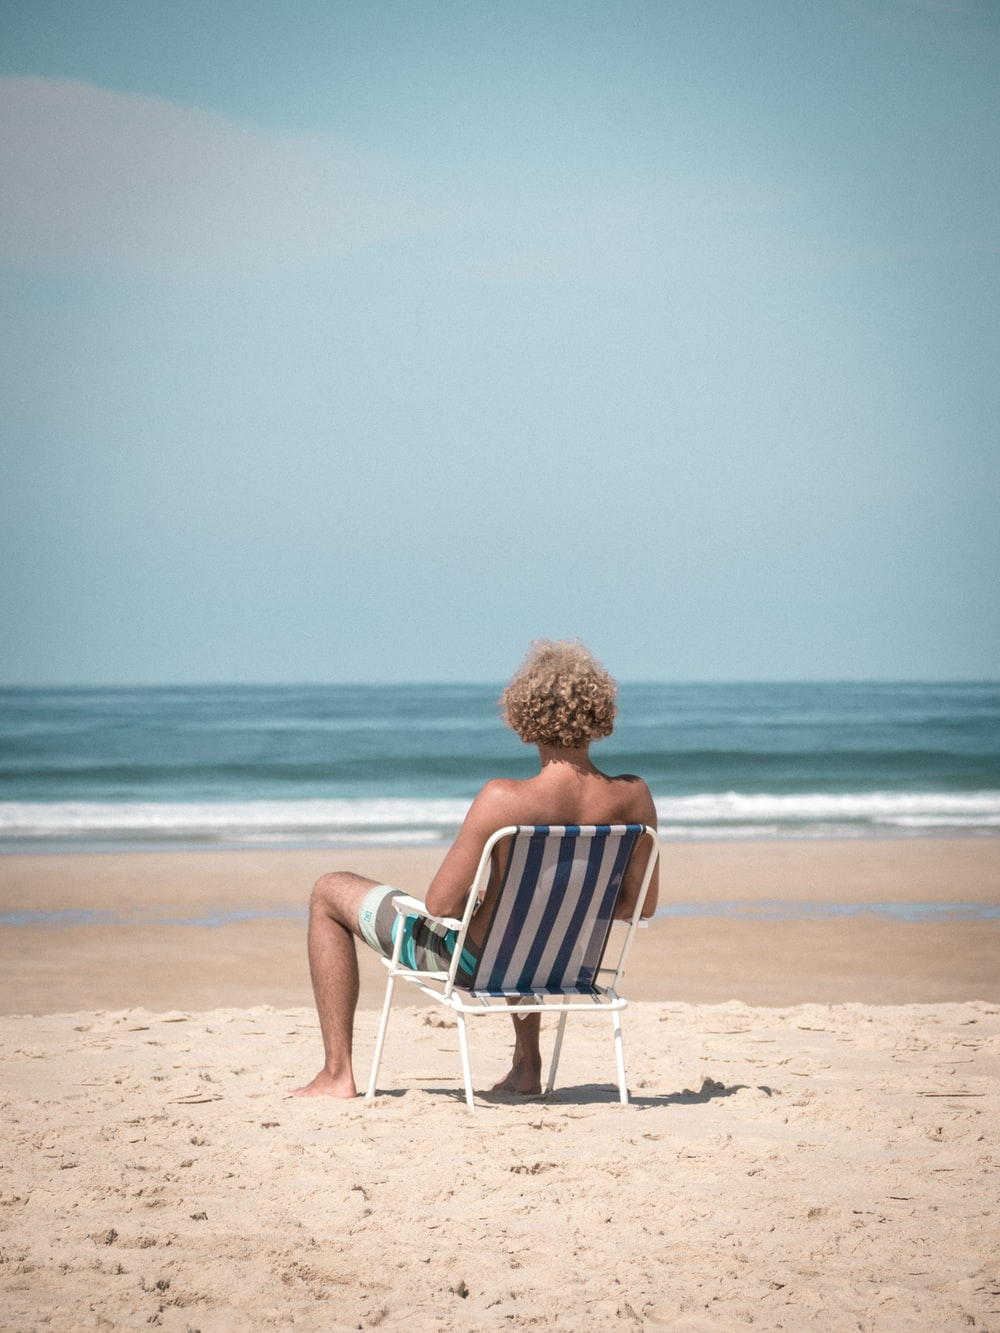 woman in red dress sitting on white and blue chair on beach during daytime